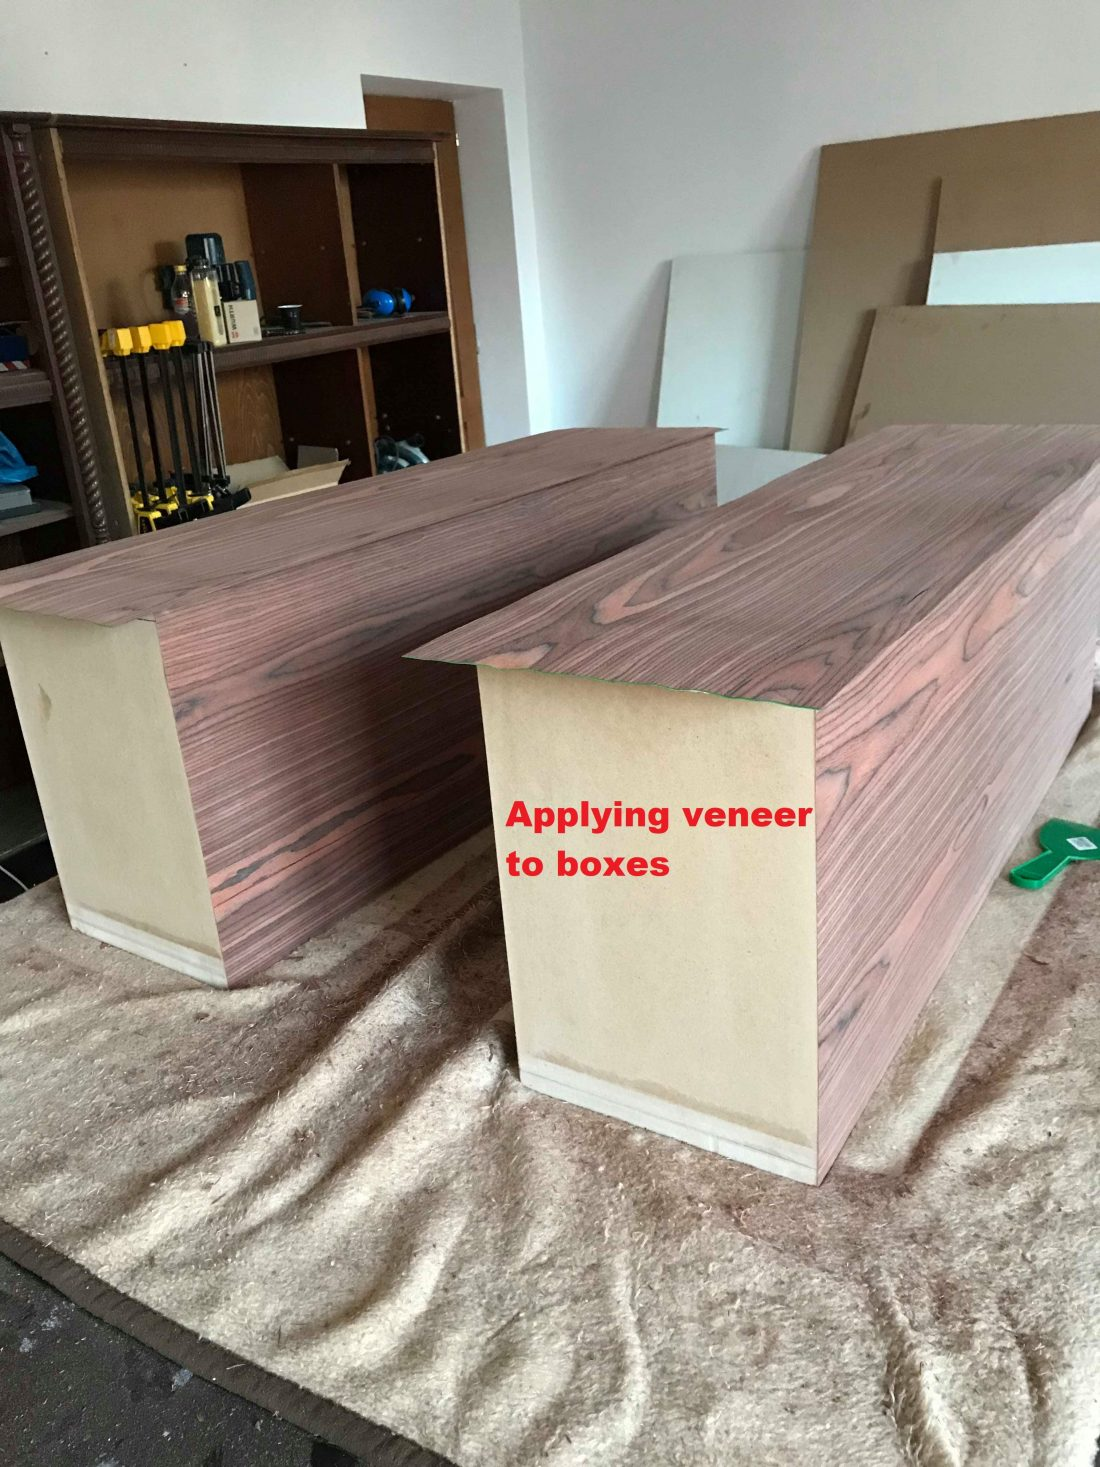 apply veneer to boxes